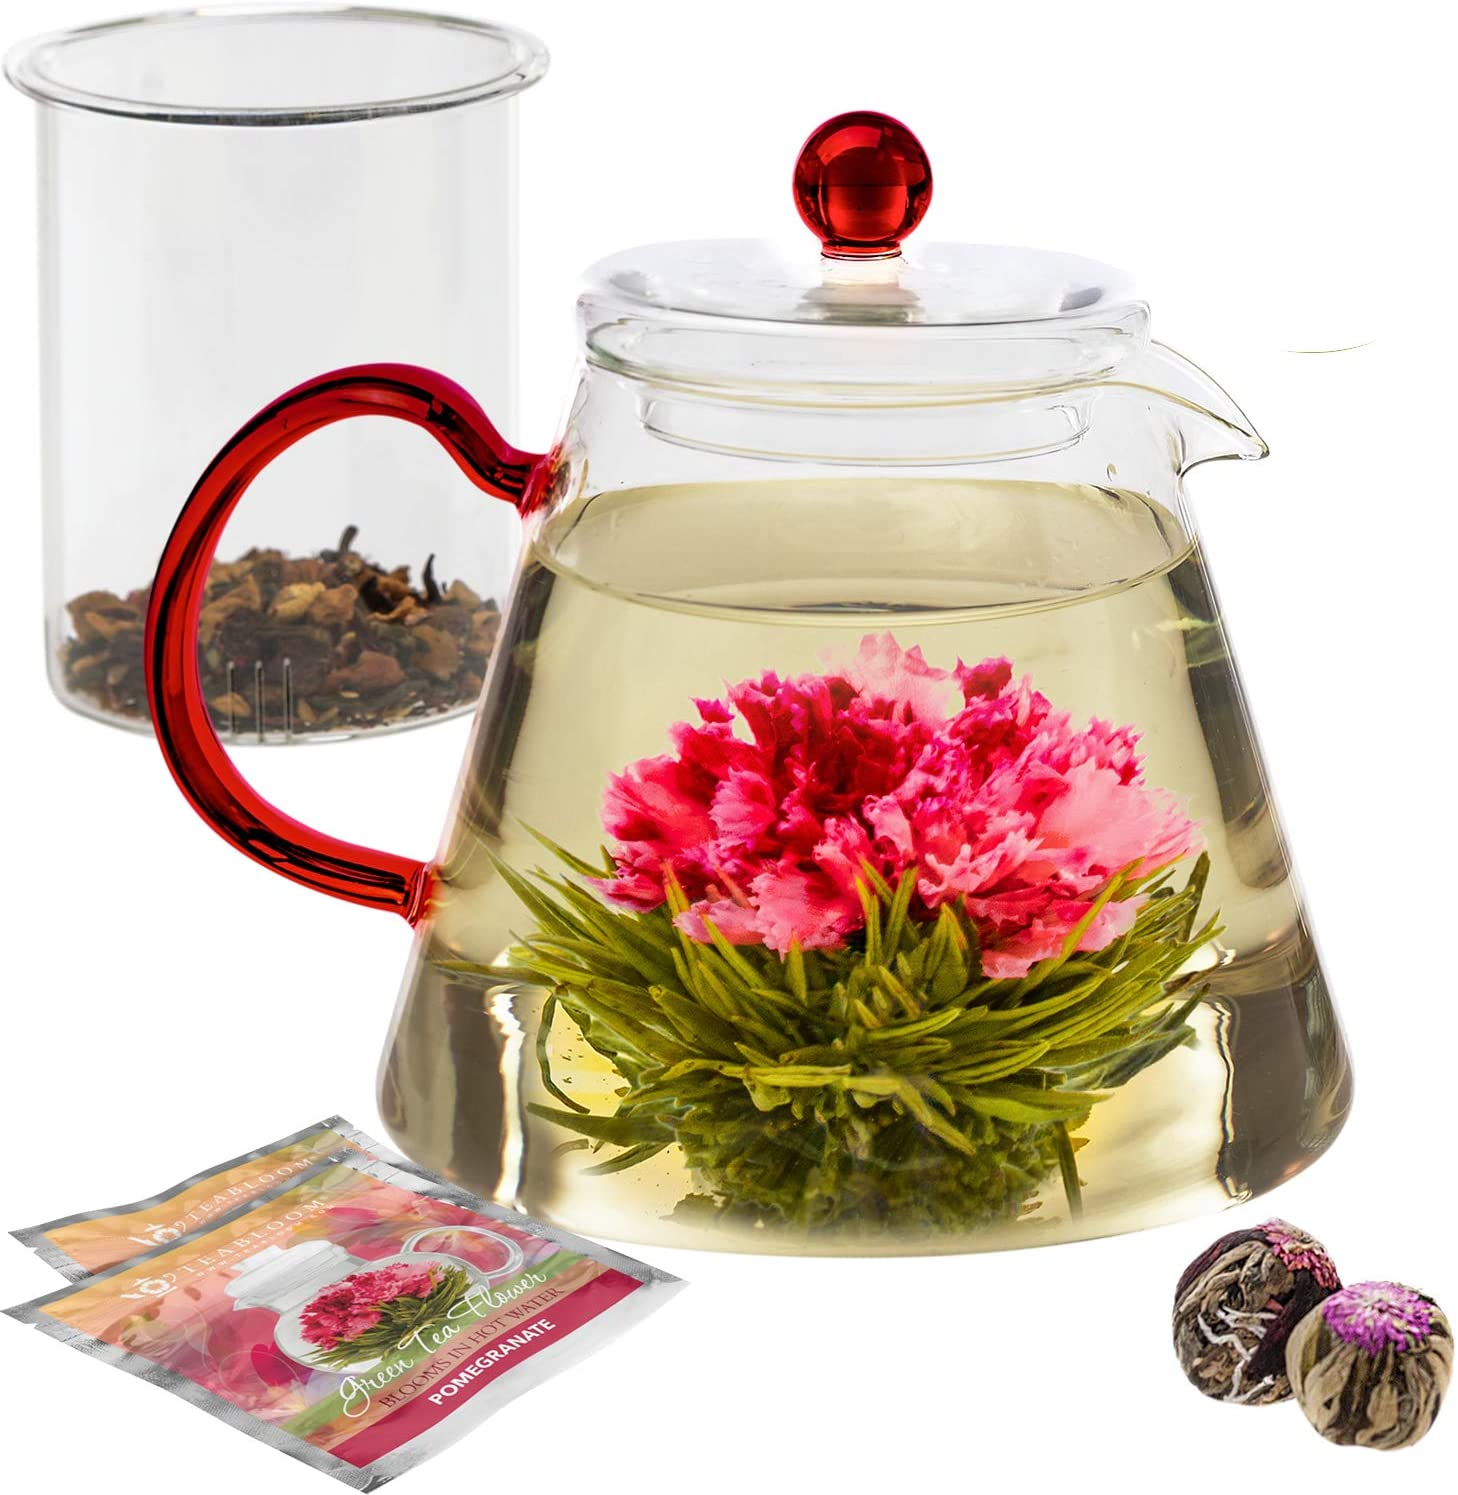 happy-mothers-day-sister-tea-pot